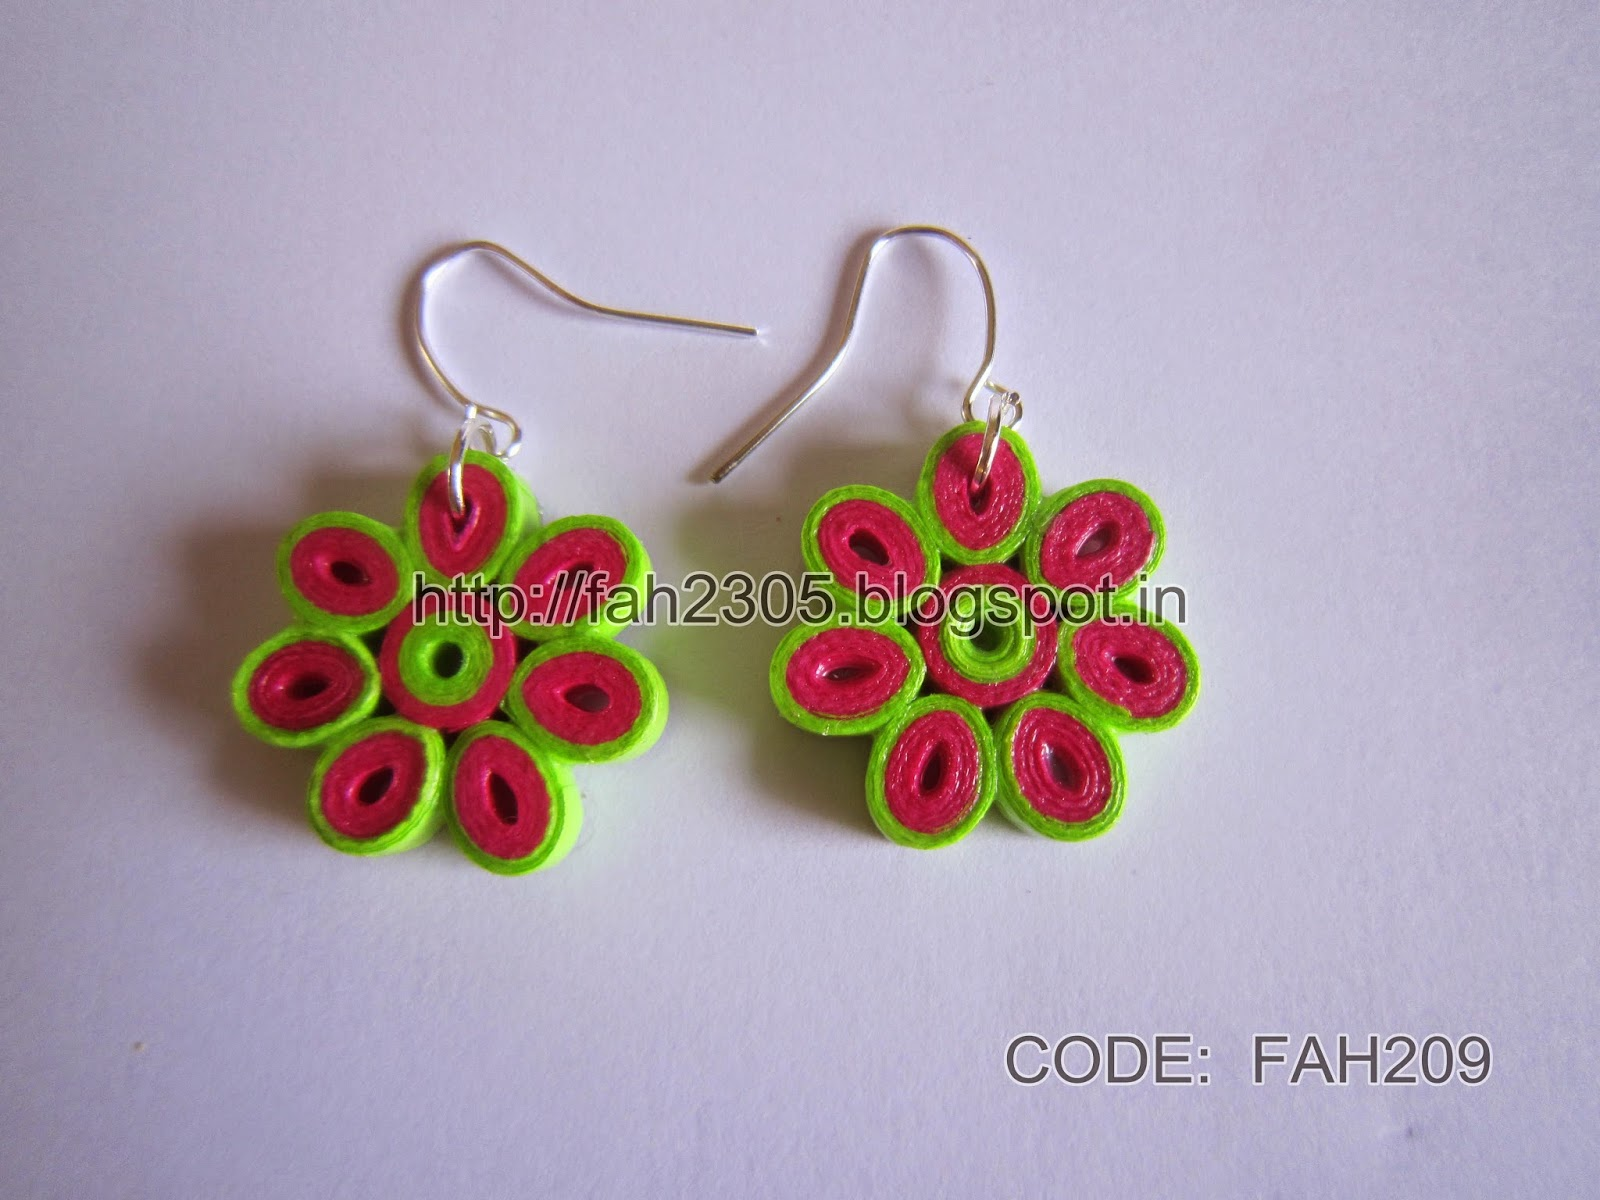 ad2f569a2 ... Quilling Earrings: Fah Creations: Paper Quilling Flower Earrings (Code  : FAH209 ...